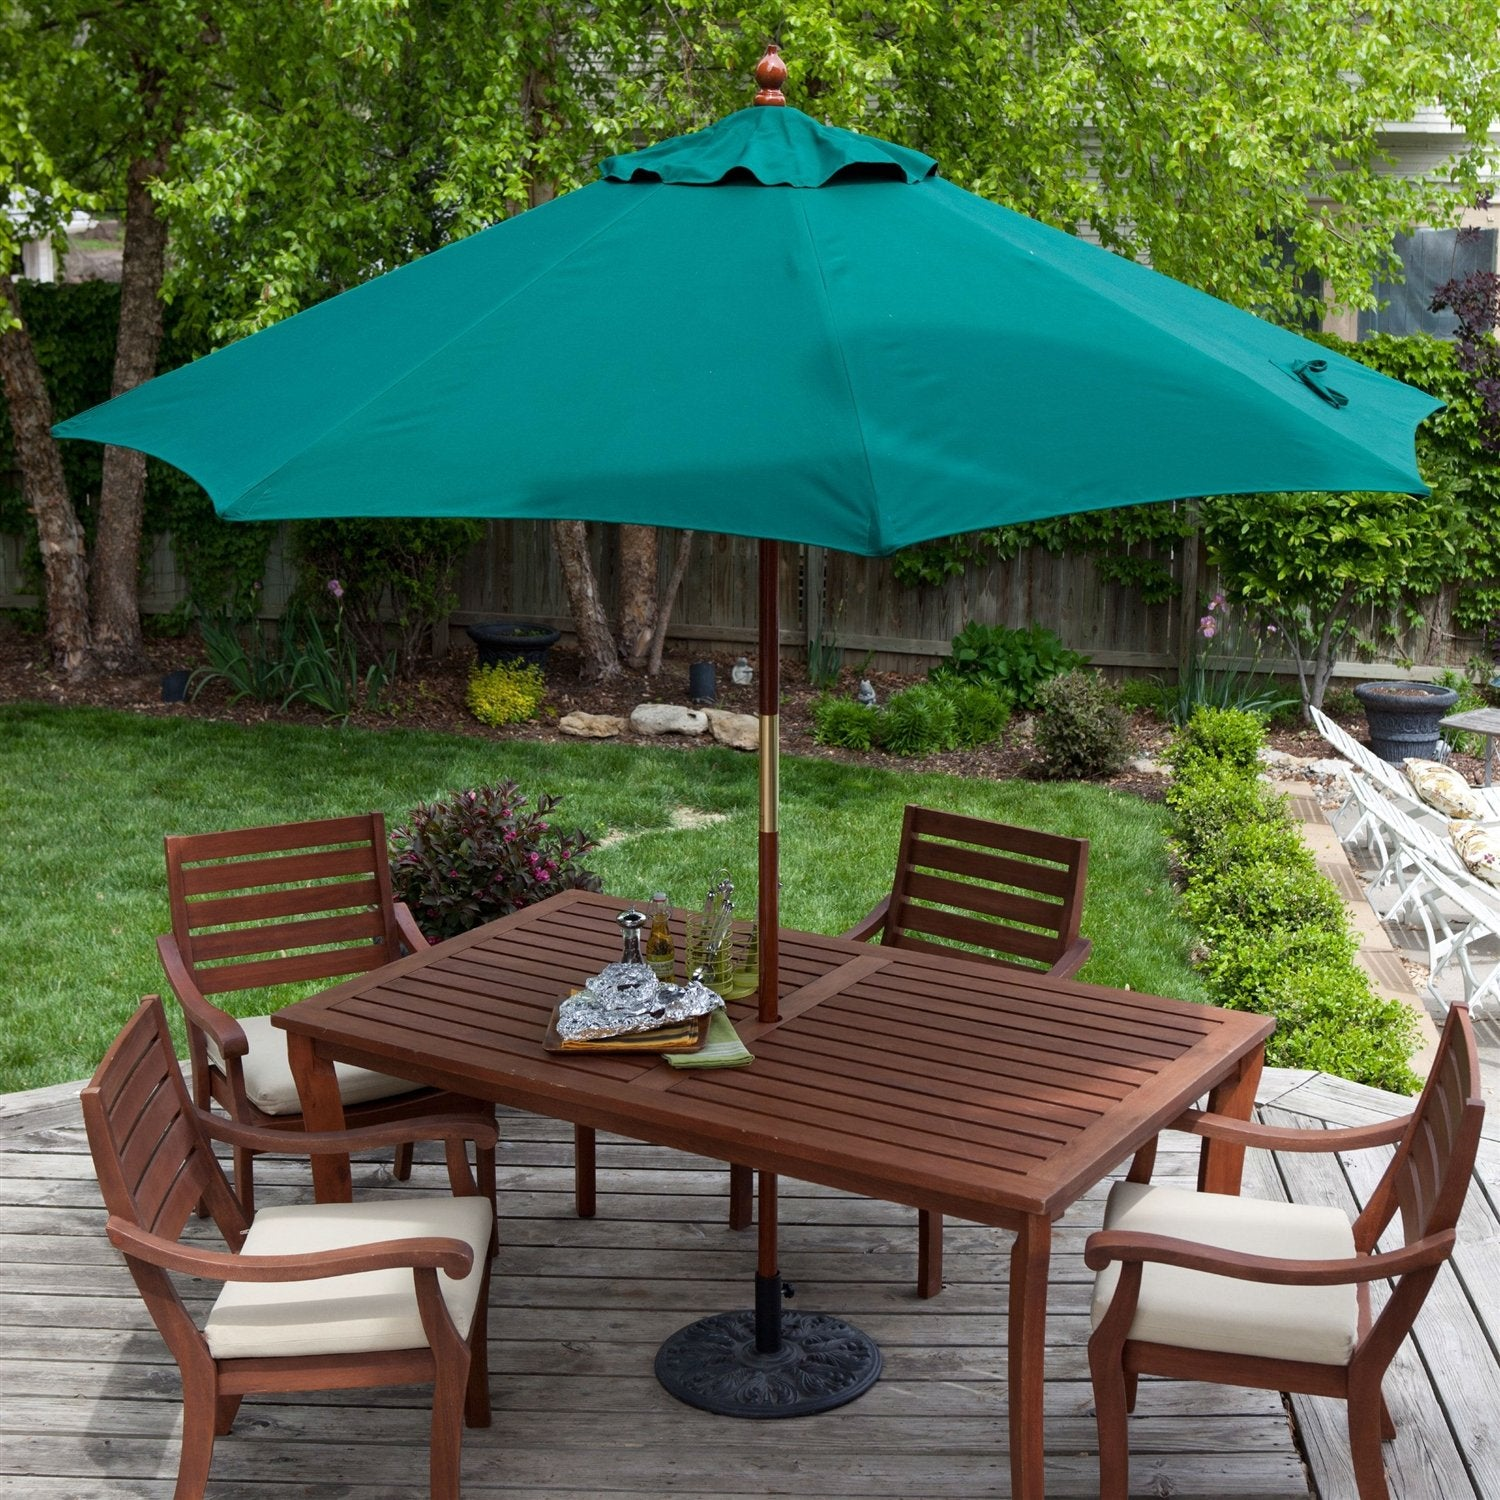 Commercial-Grade 9-Ft Patio Umbrella with Forest Green Sunbrella Canopy